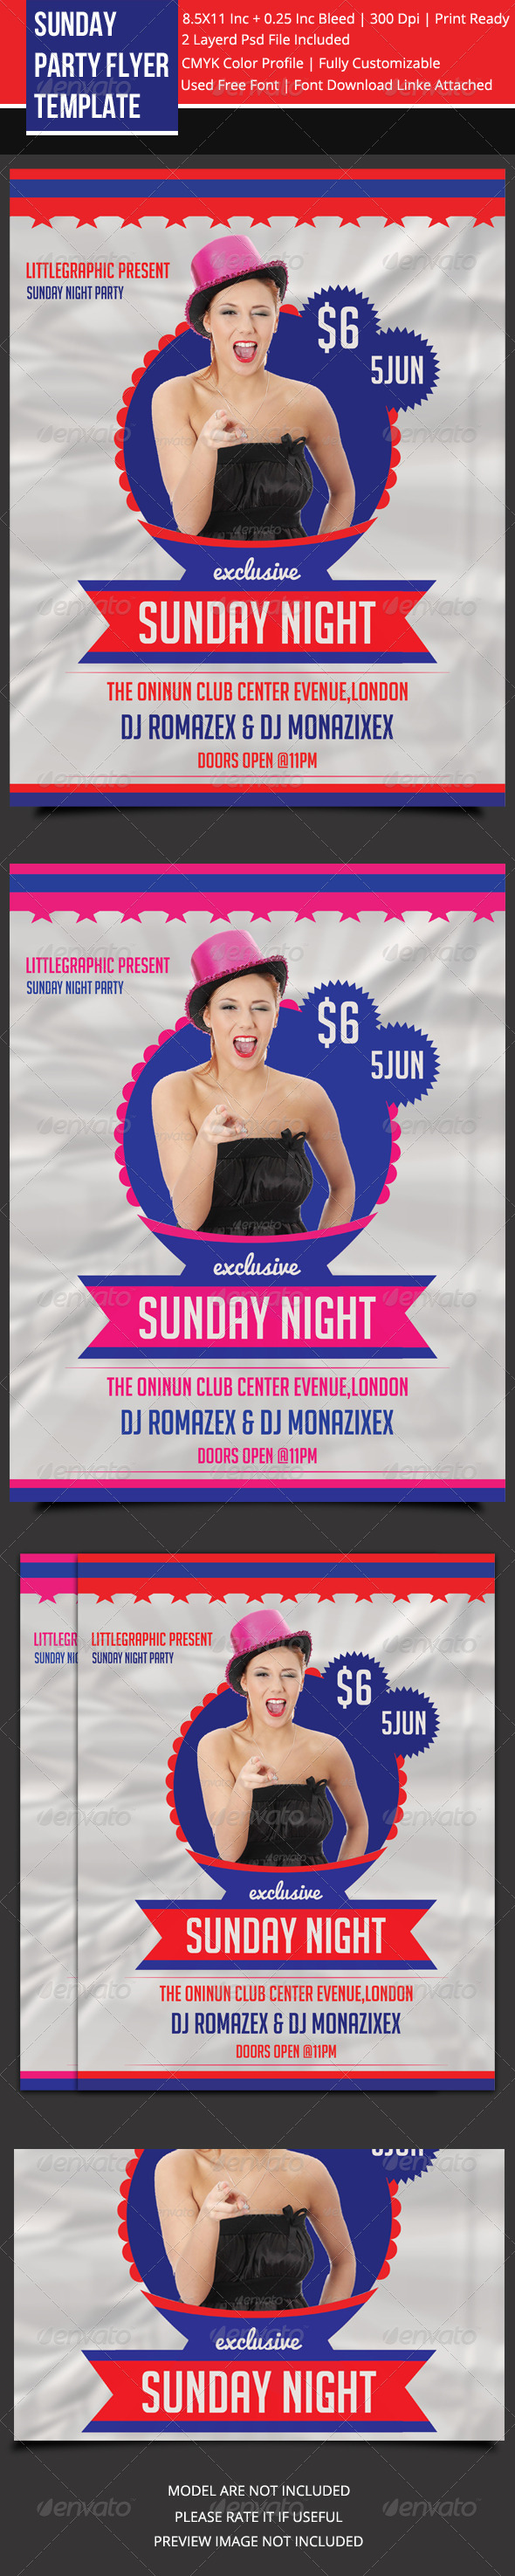 GraphicRiver Sunday Party Flyer 2 5980773